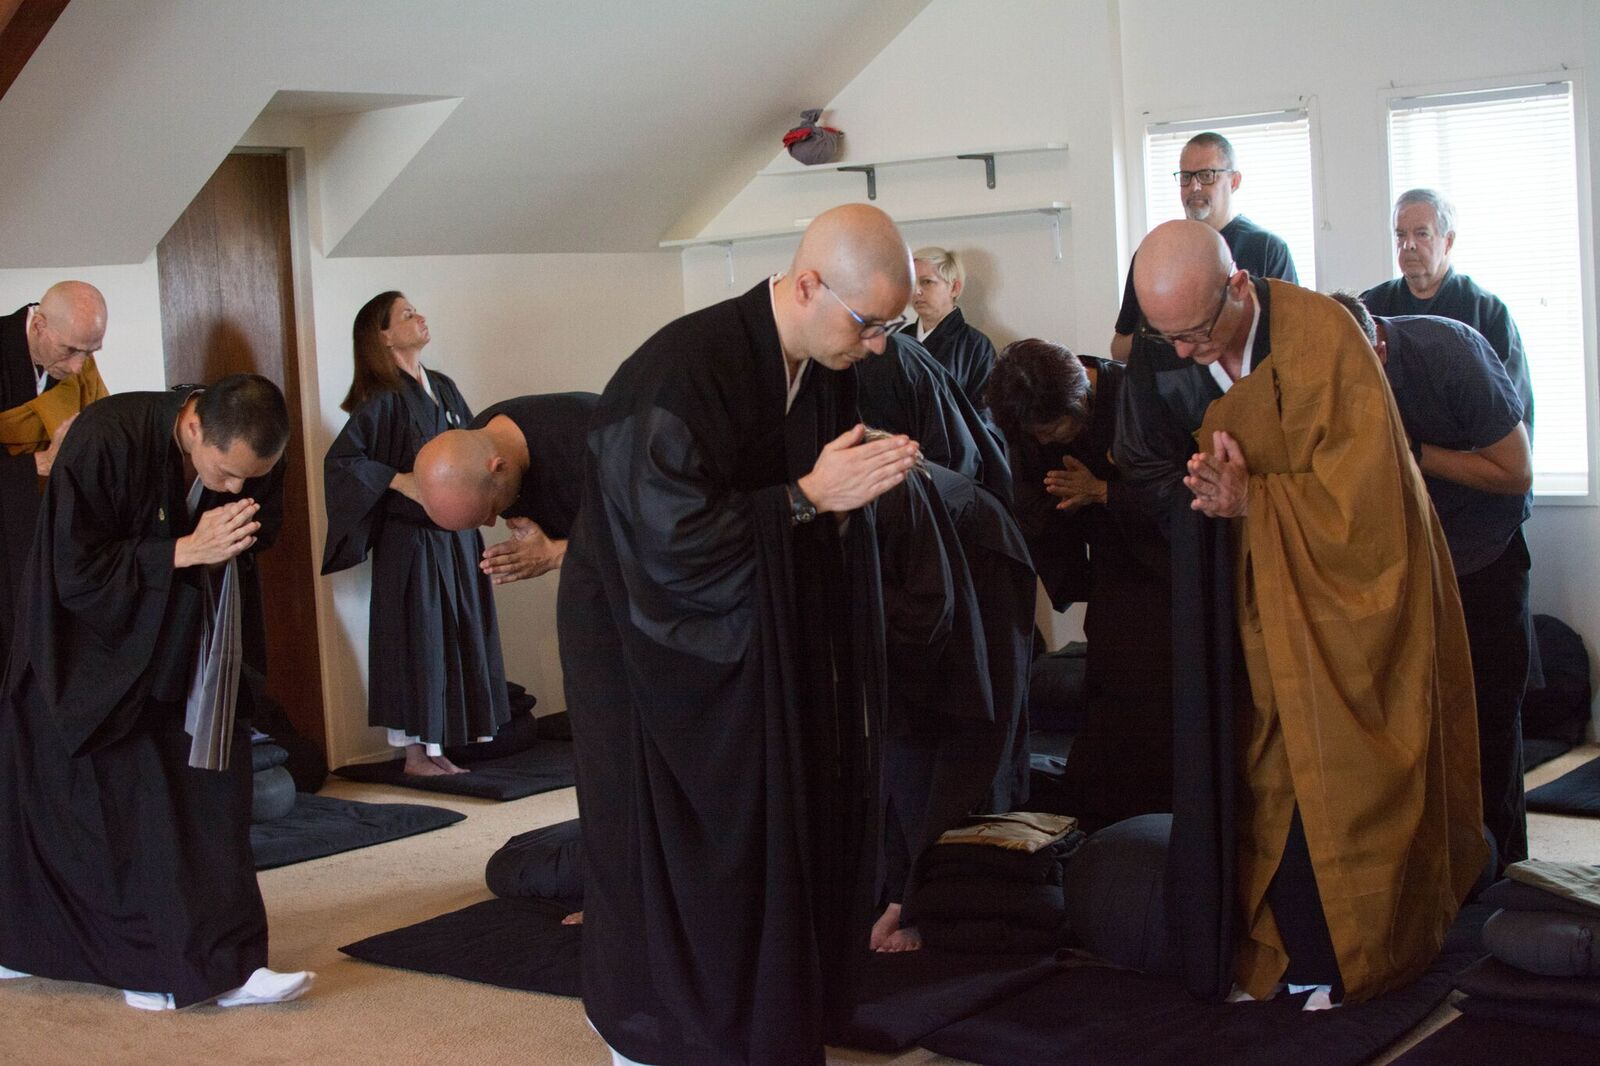 Juzen and Chudo bowing